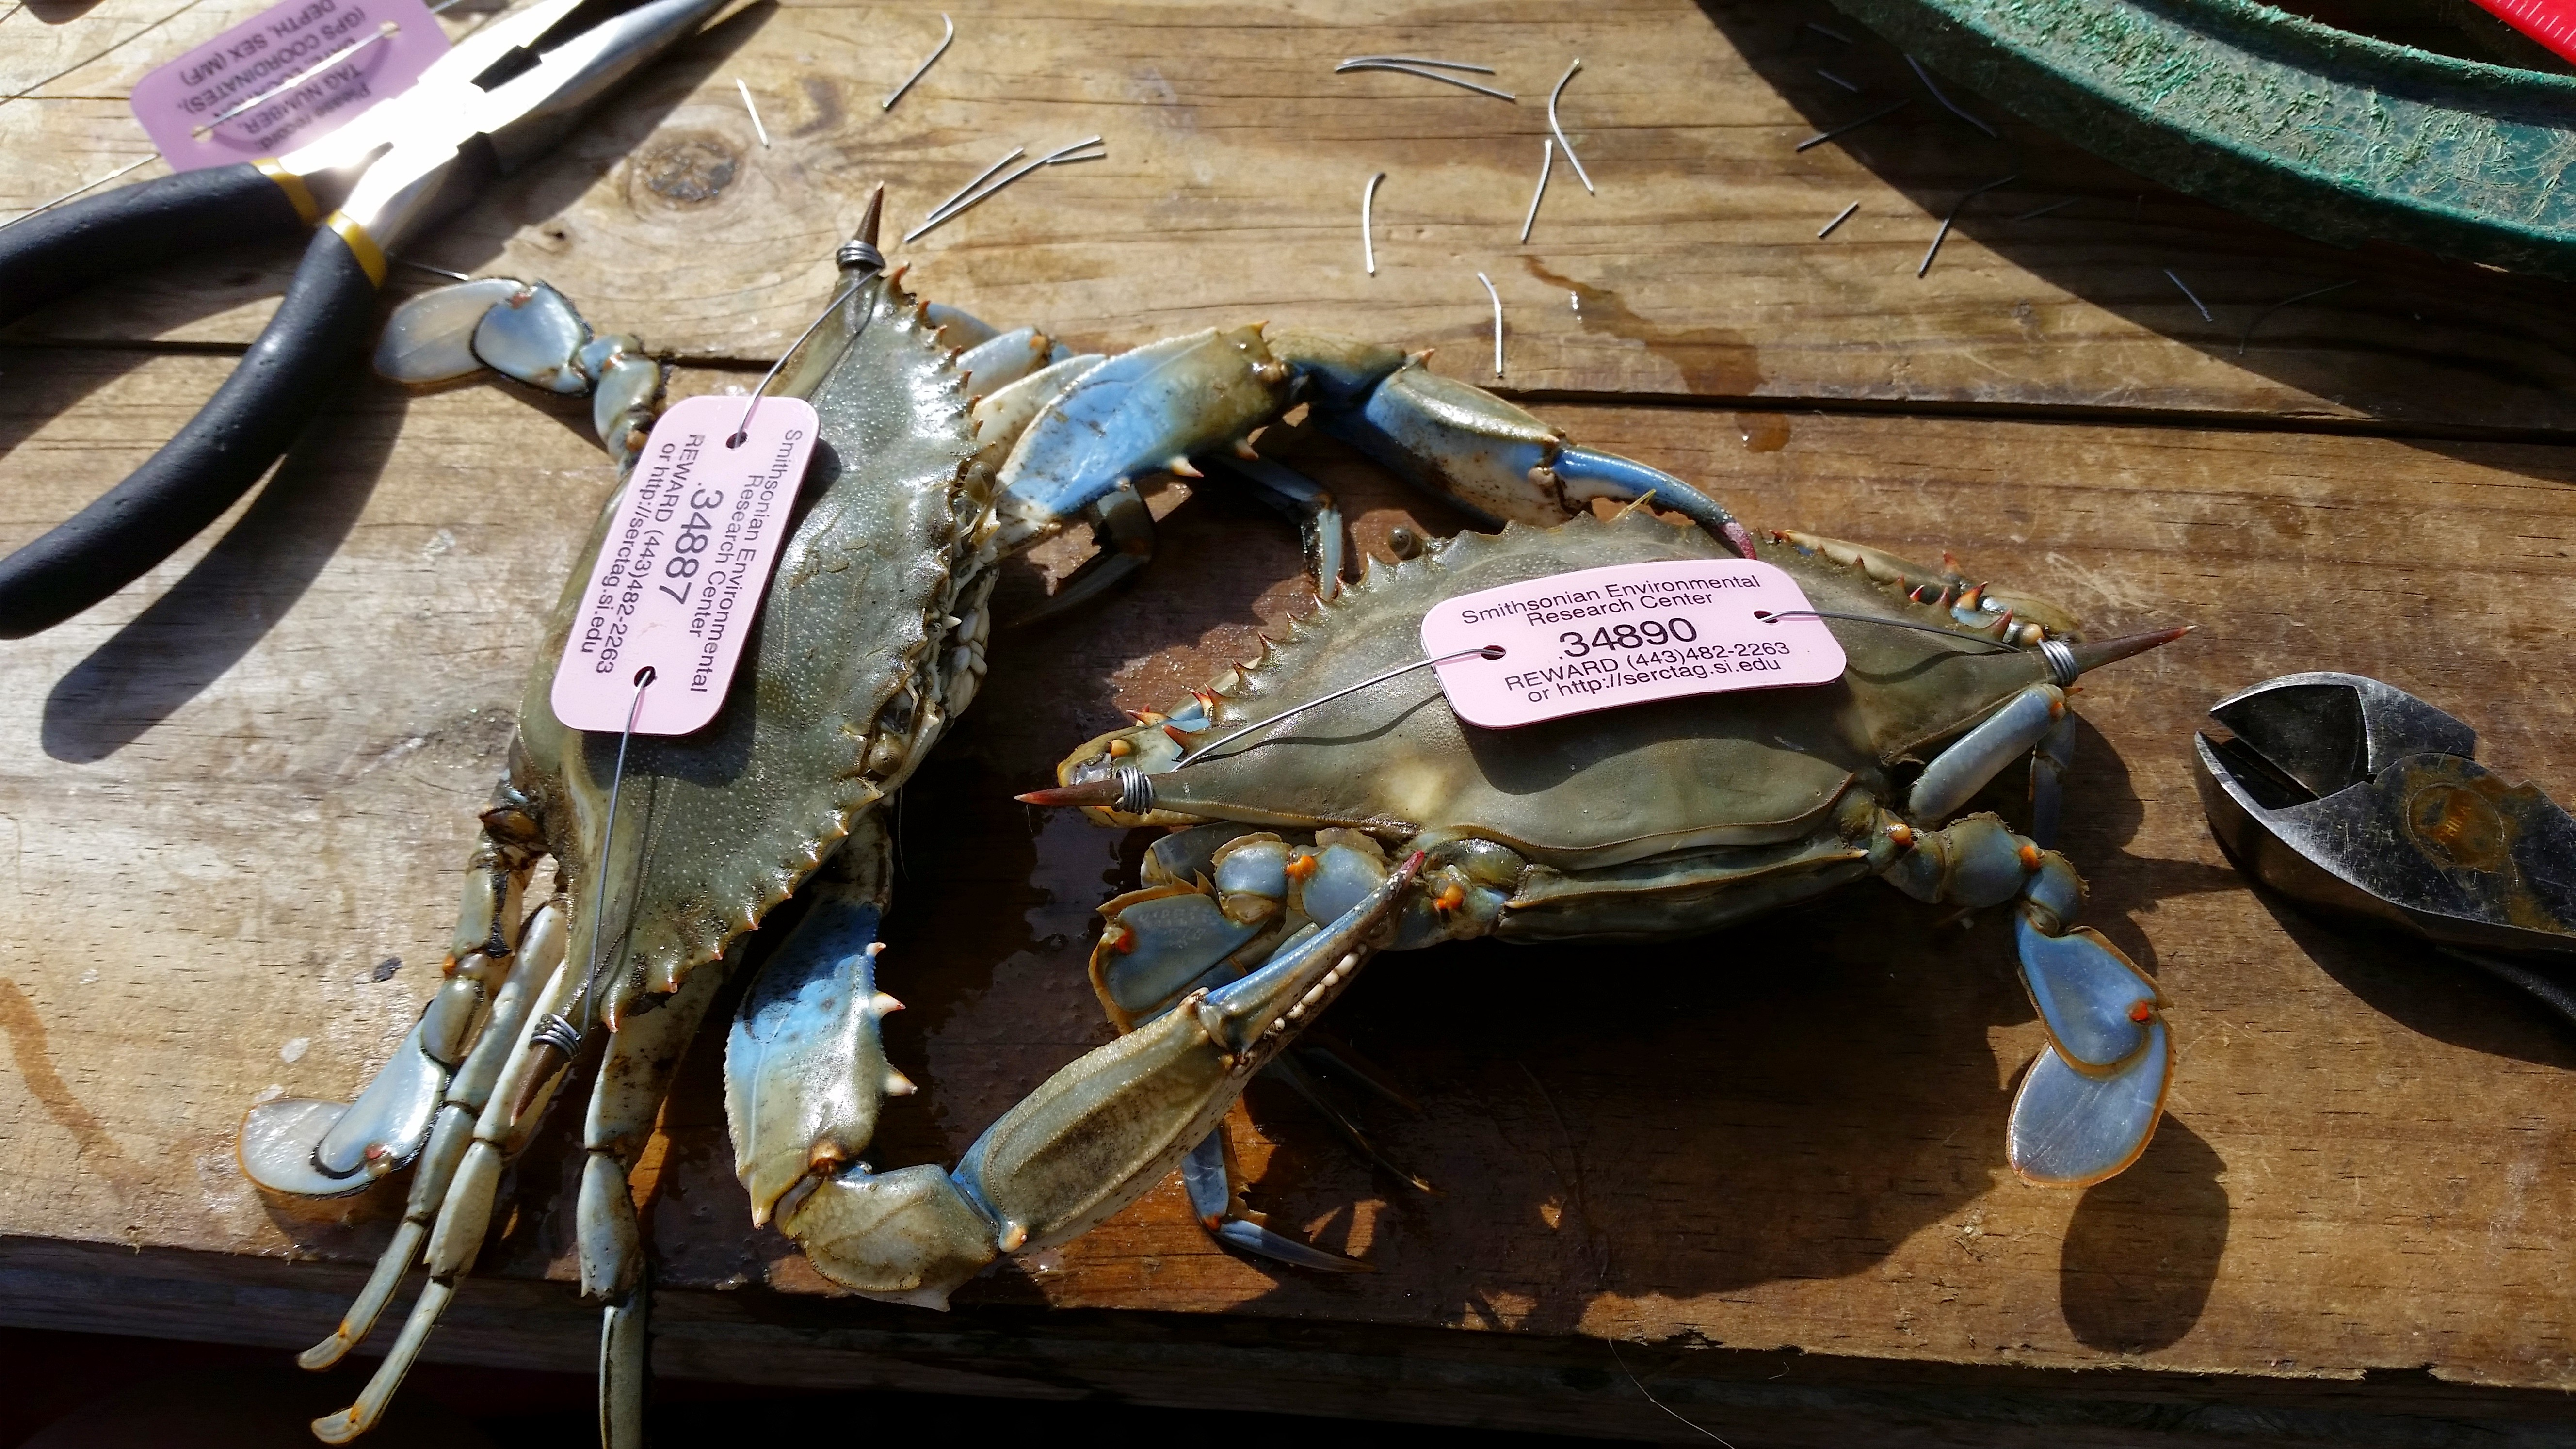 Two crabs lay on a table with tags on their backs